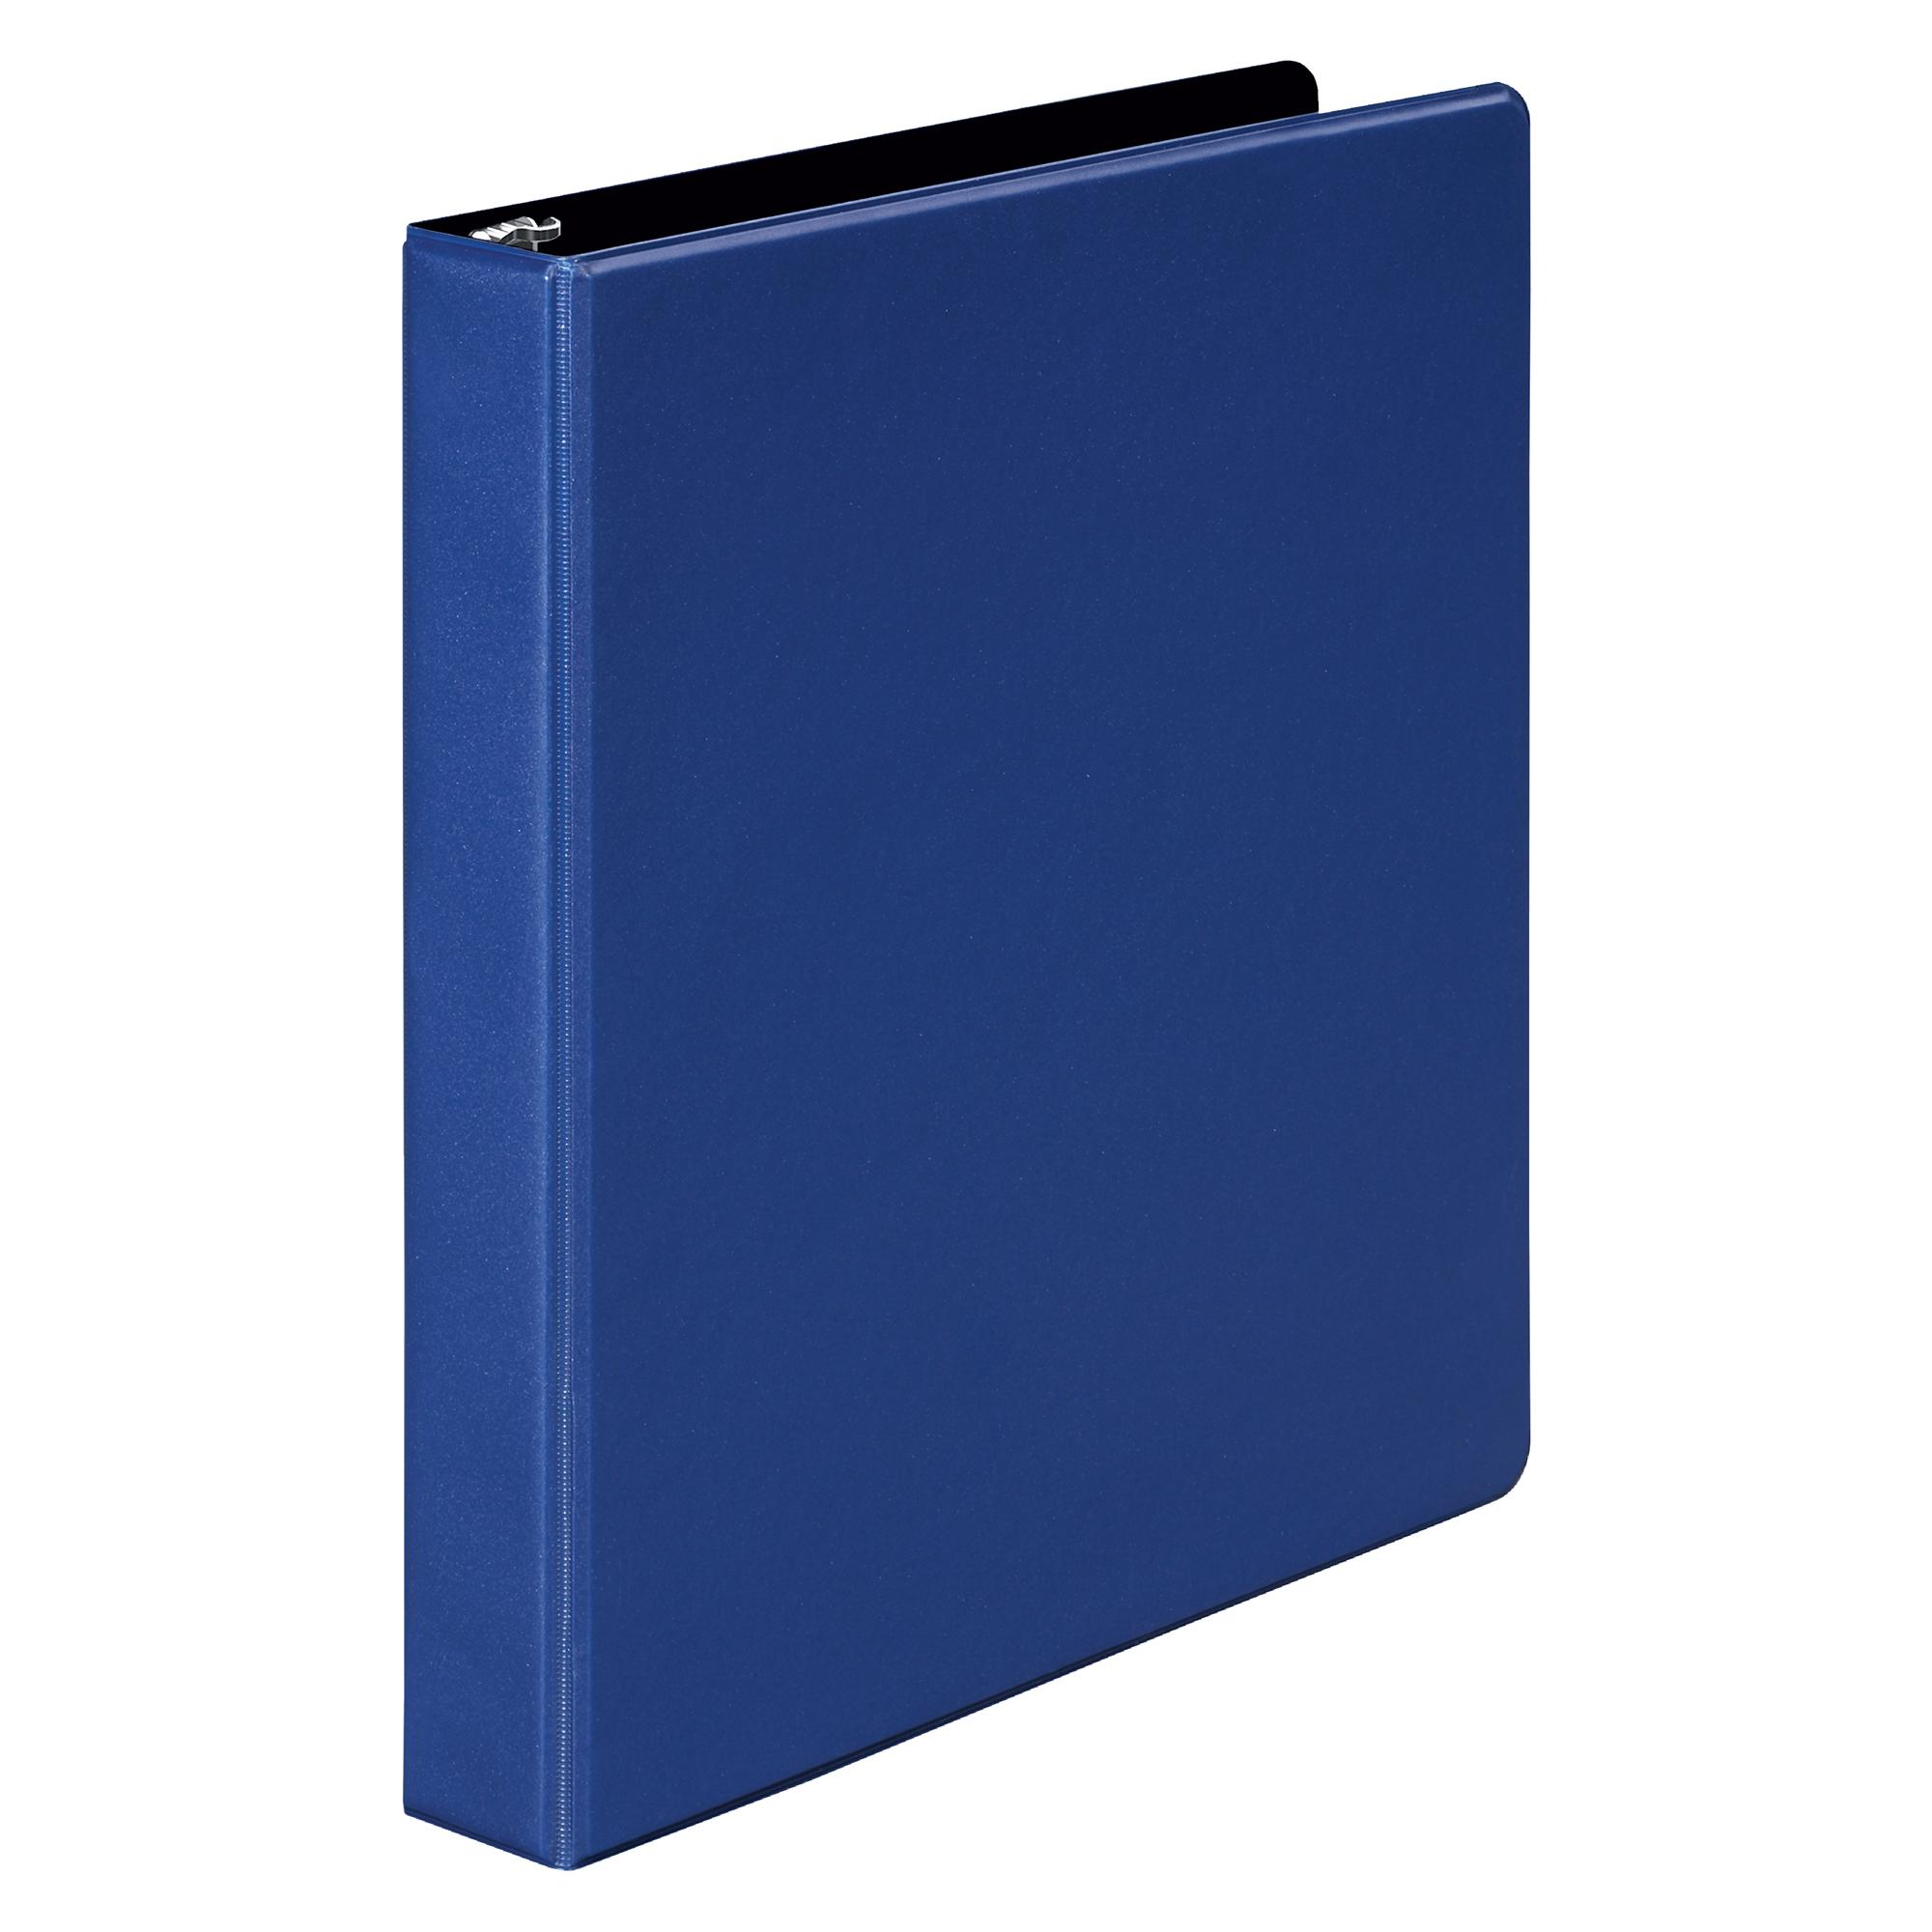 amazon com wilson jones 3 ring binder 1 inch round ring binder